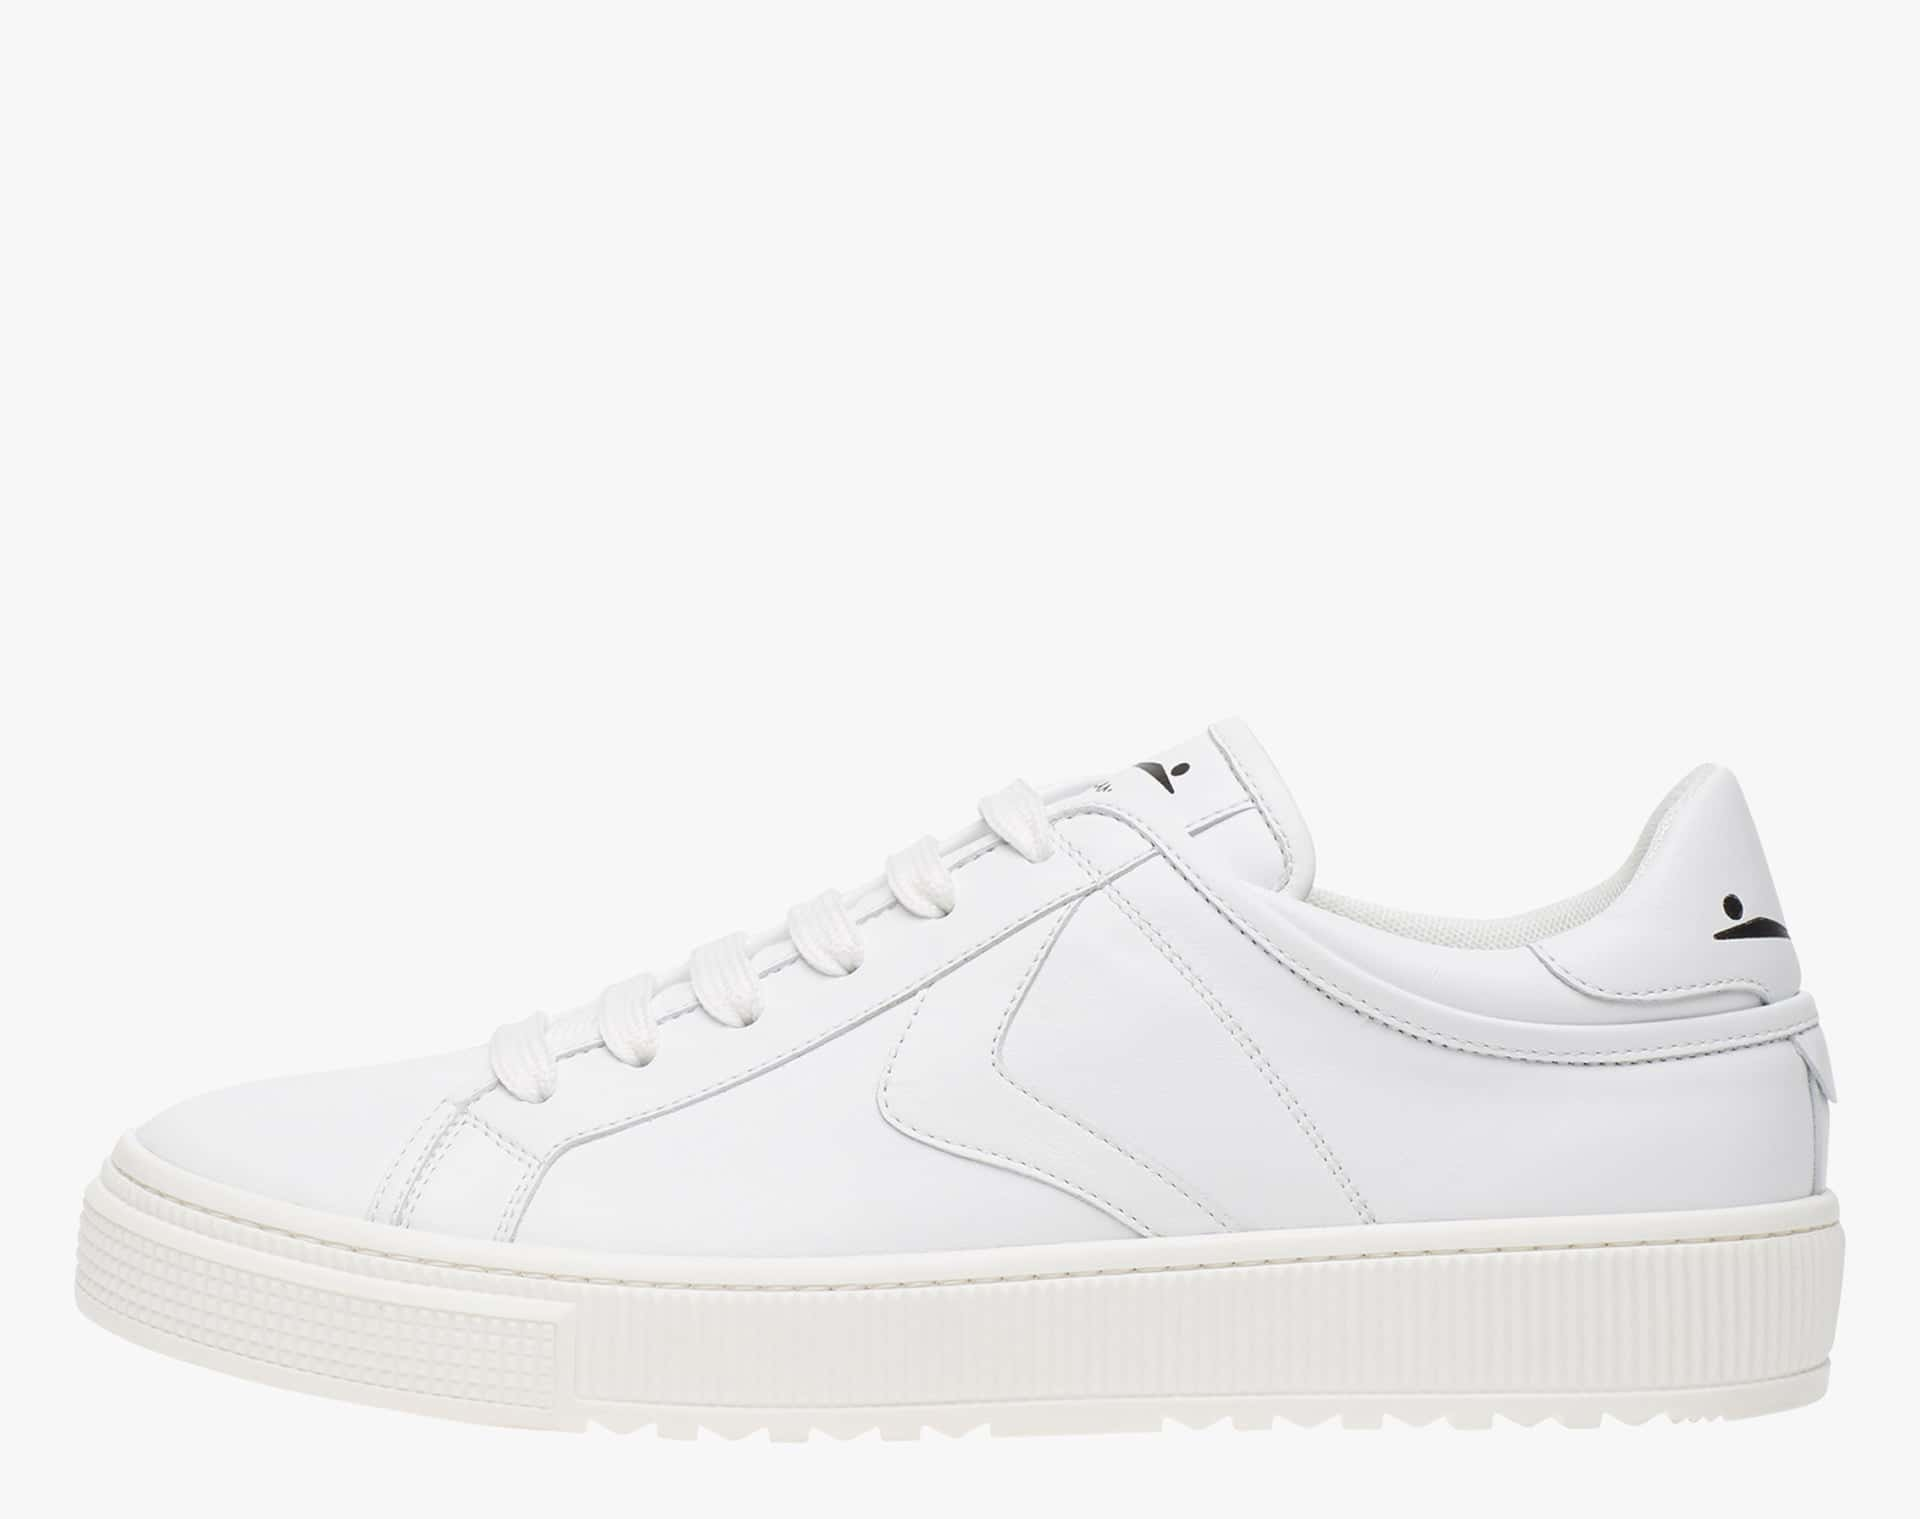 FIT - Nappa leather sneakers with contrasting profiles - White